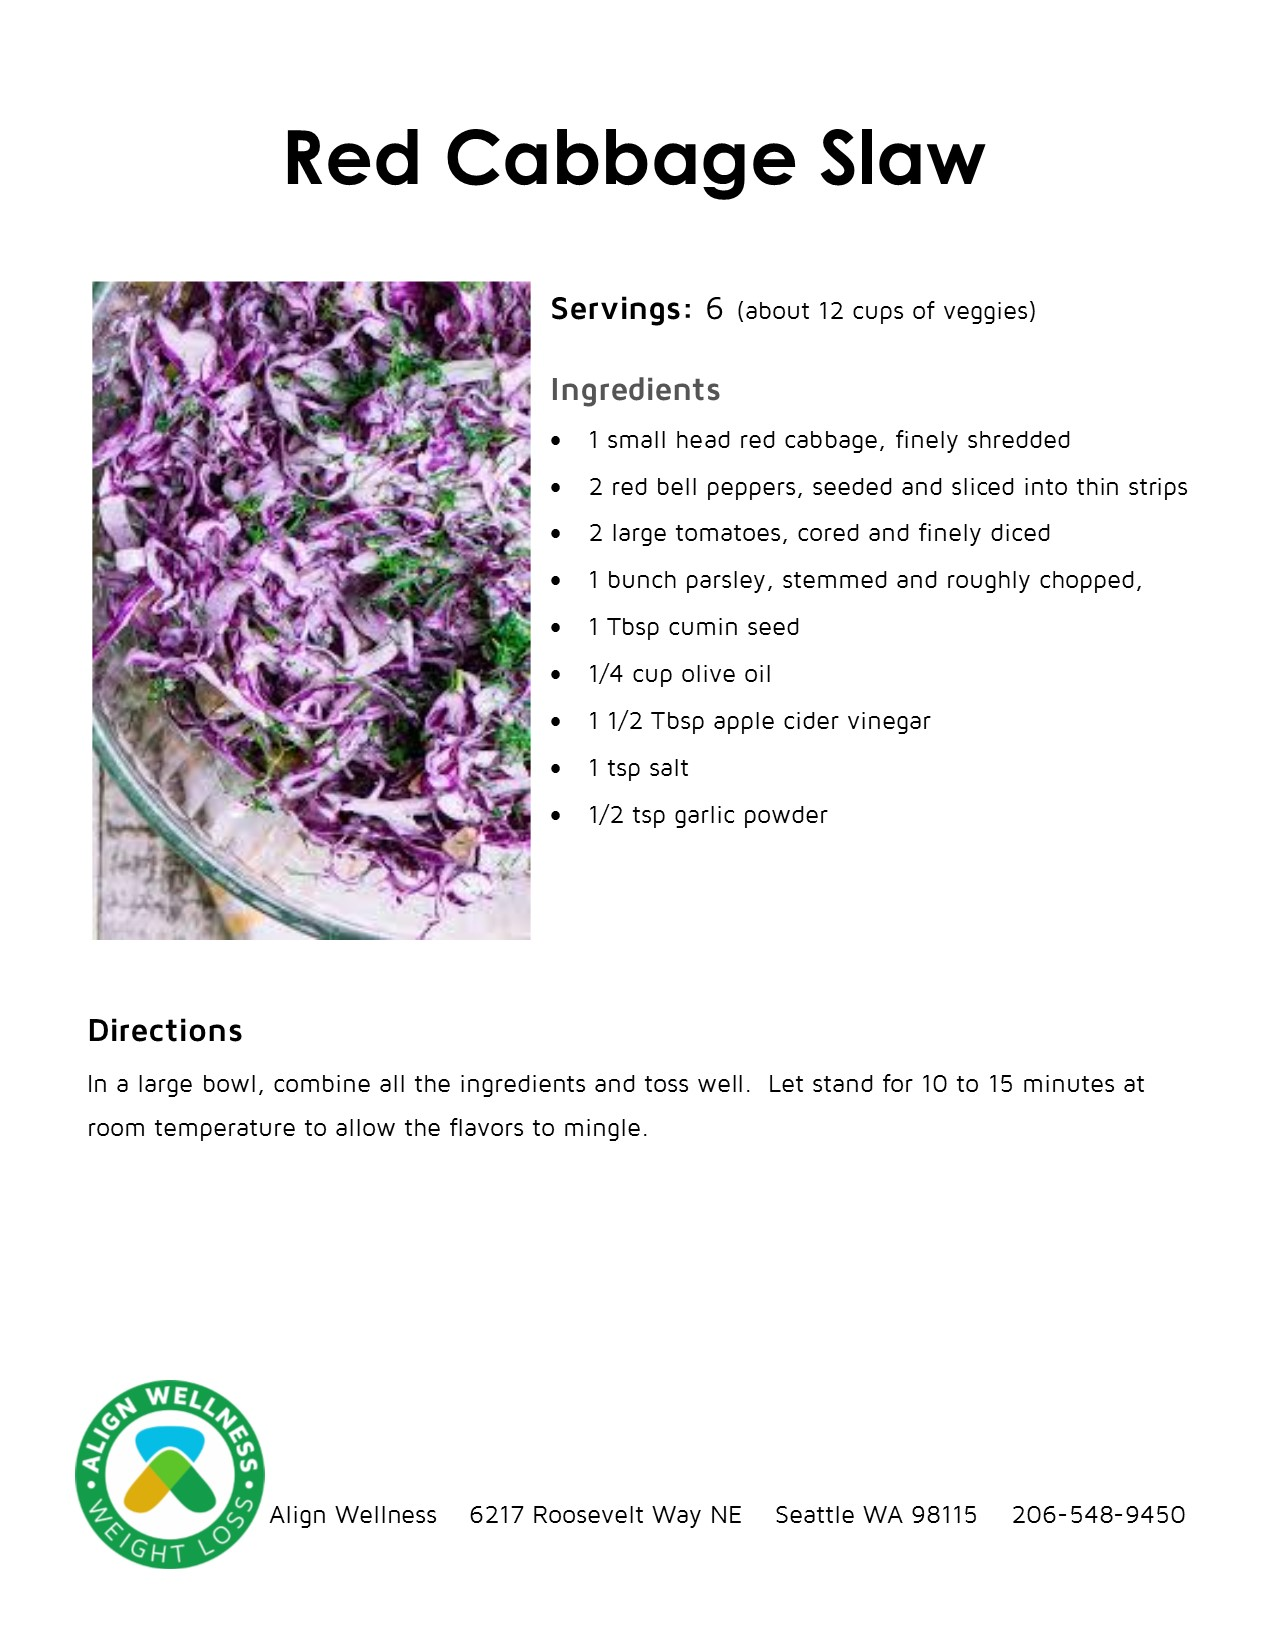 Red Cabbage Slaw Ideal Protein Recipe